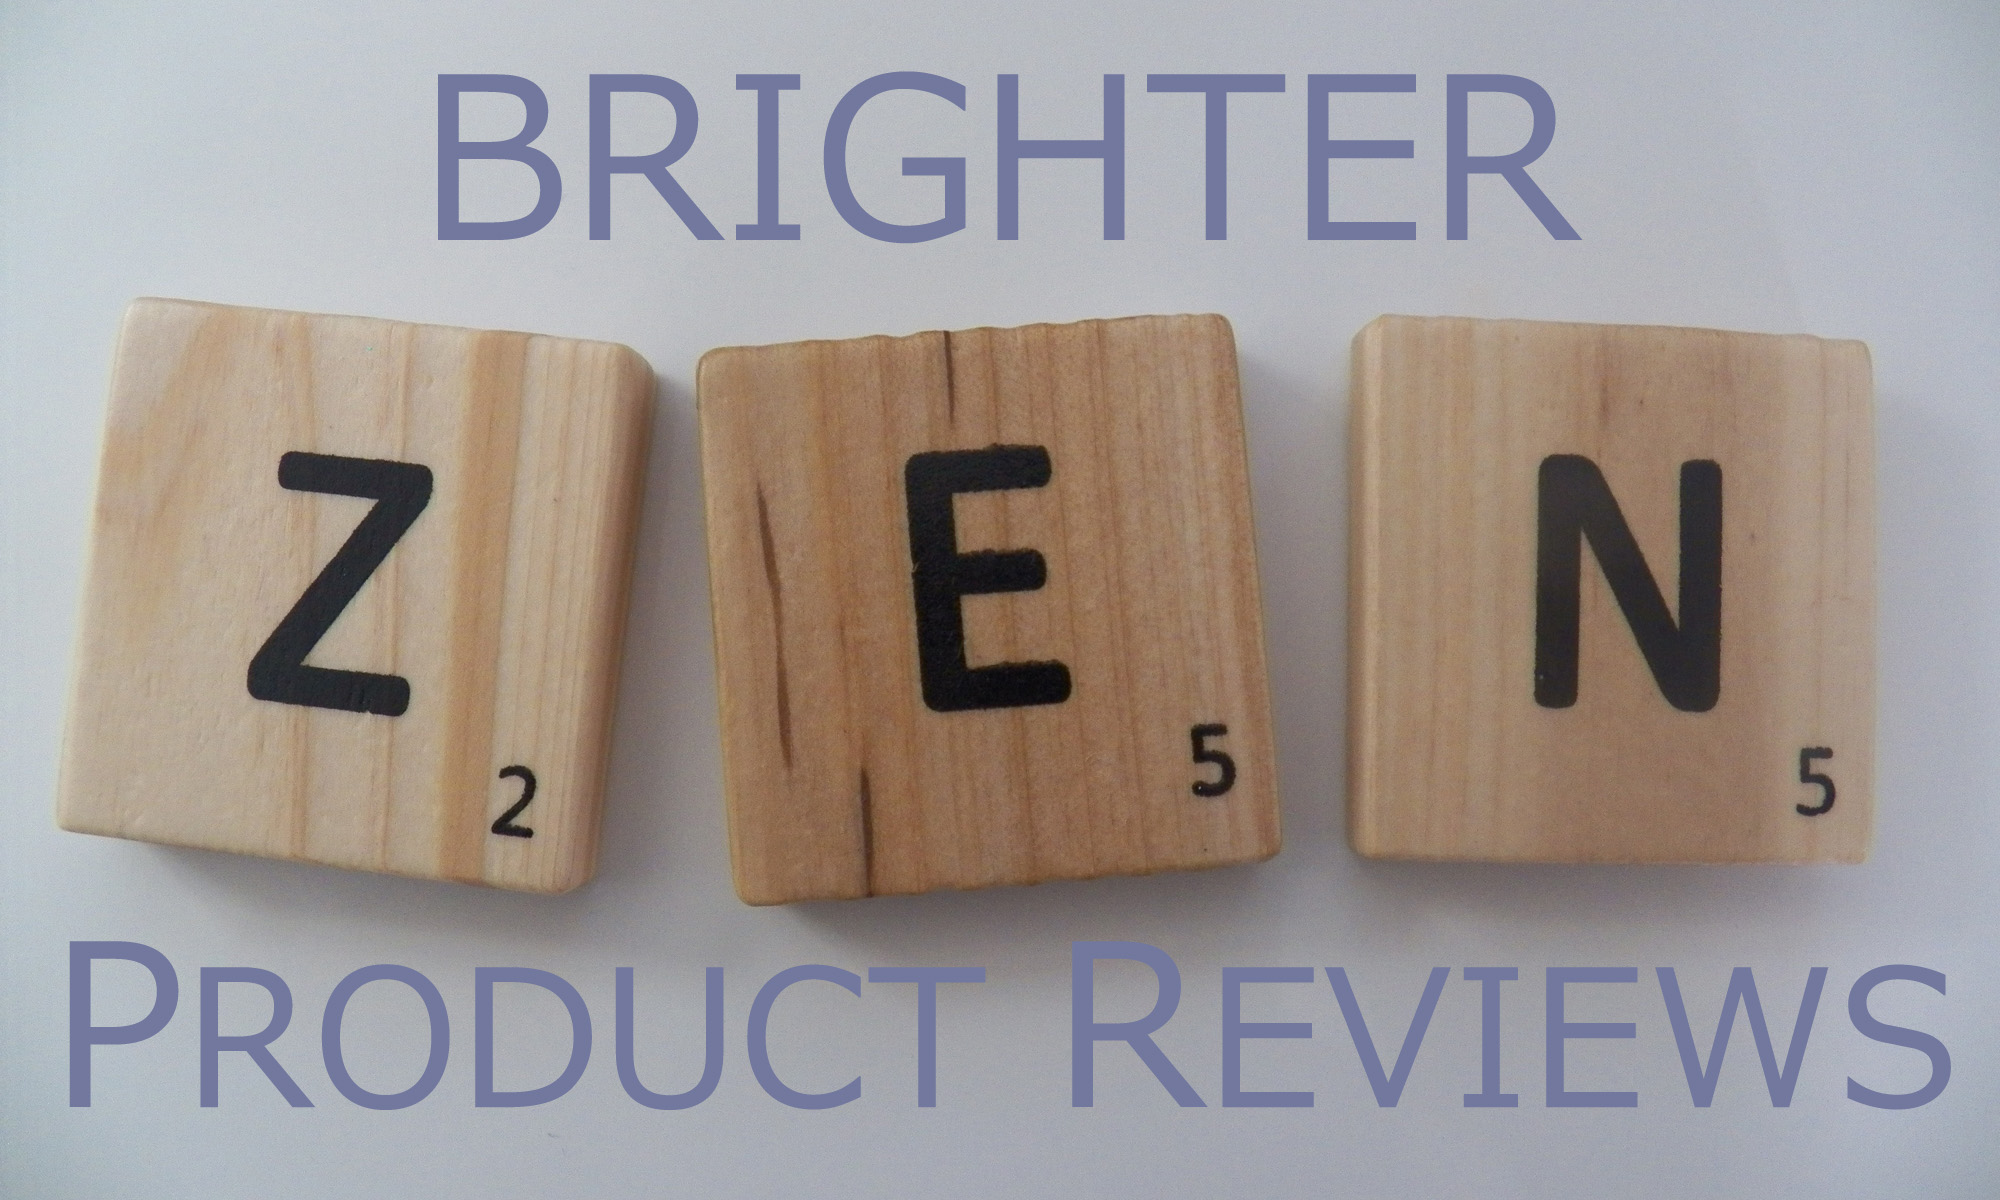 brighter-zen-product-reviews-2000x1200px